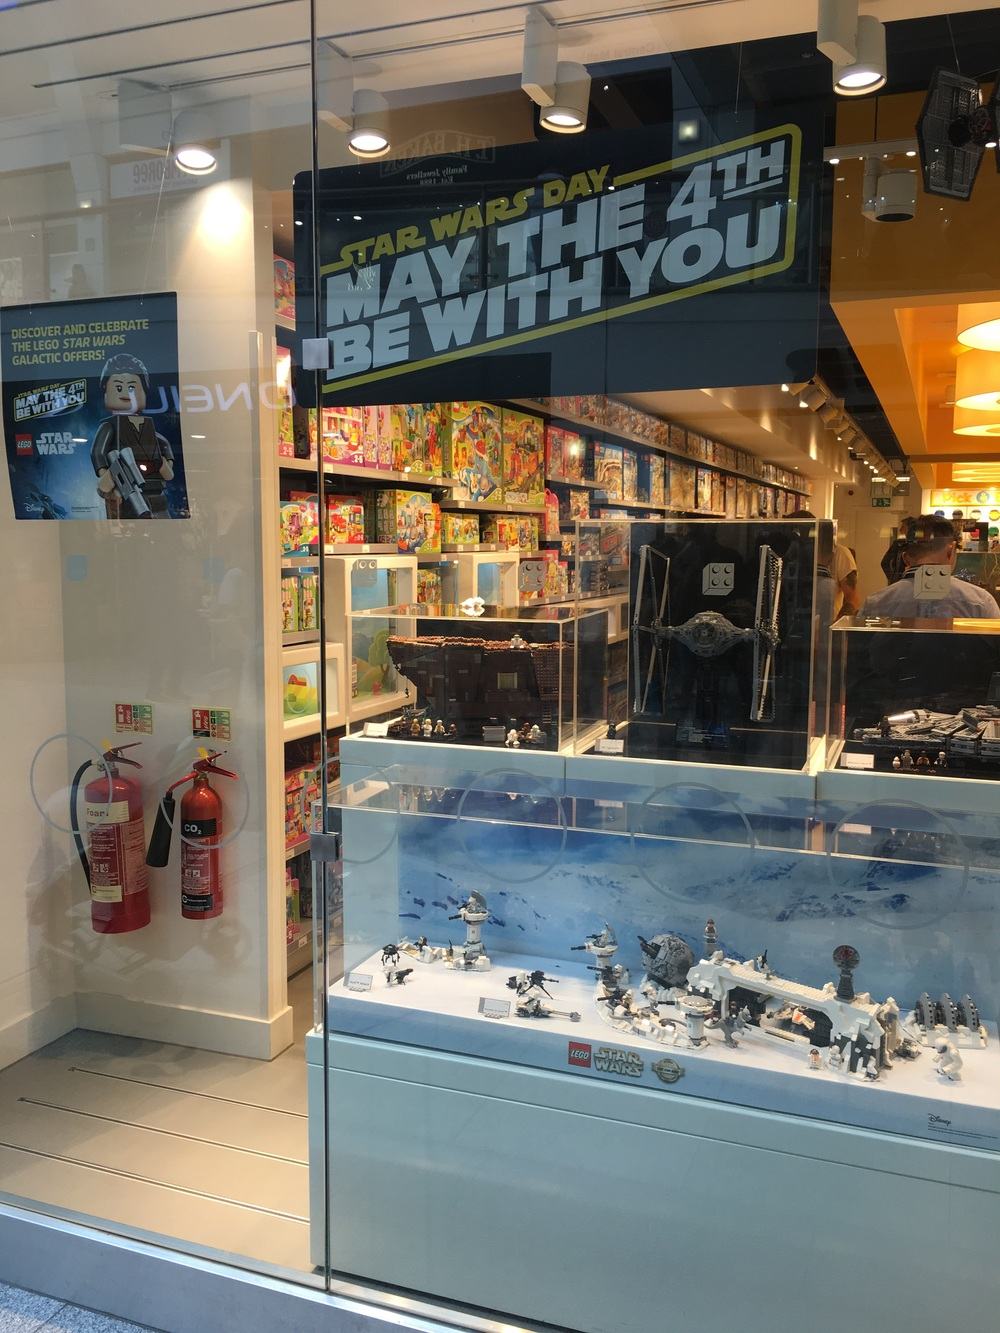 It was May The Fourth Be With You Lego Star Wars promotion